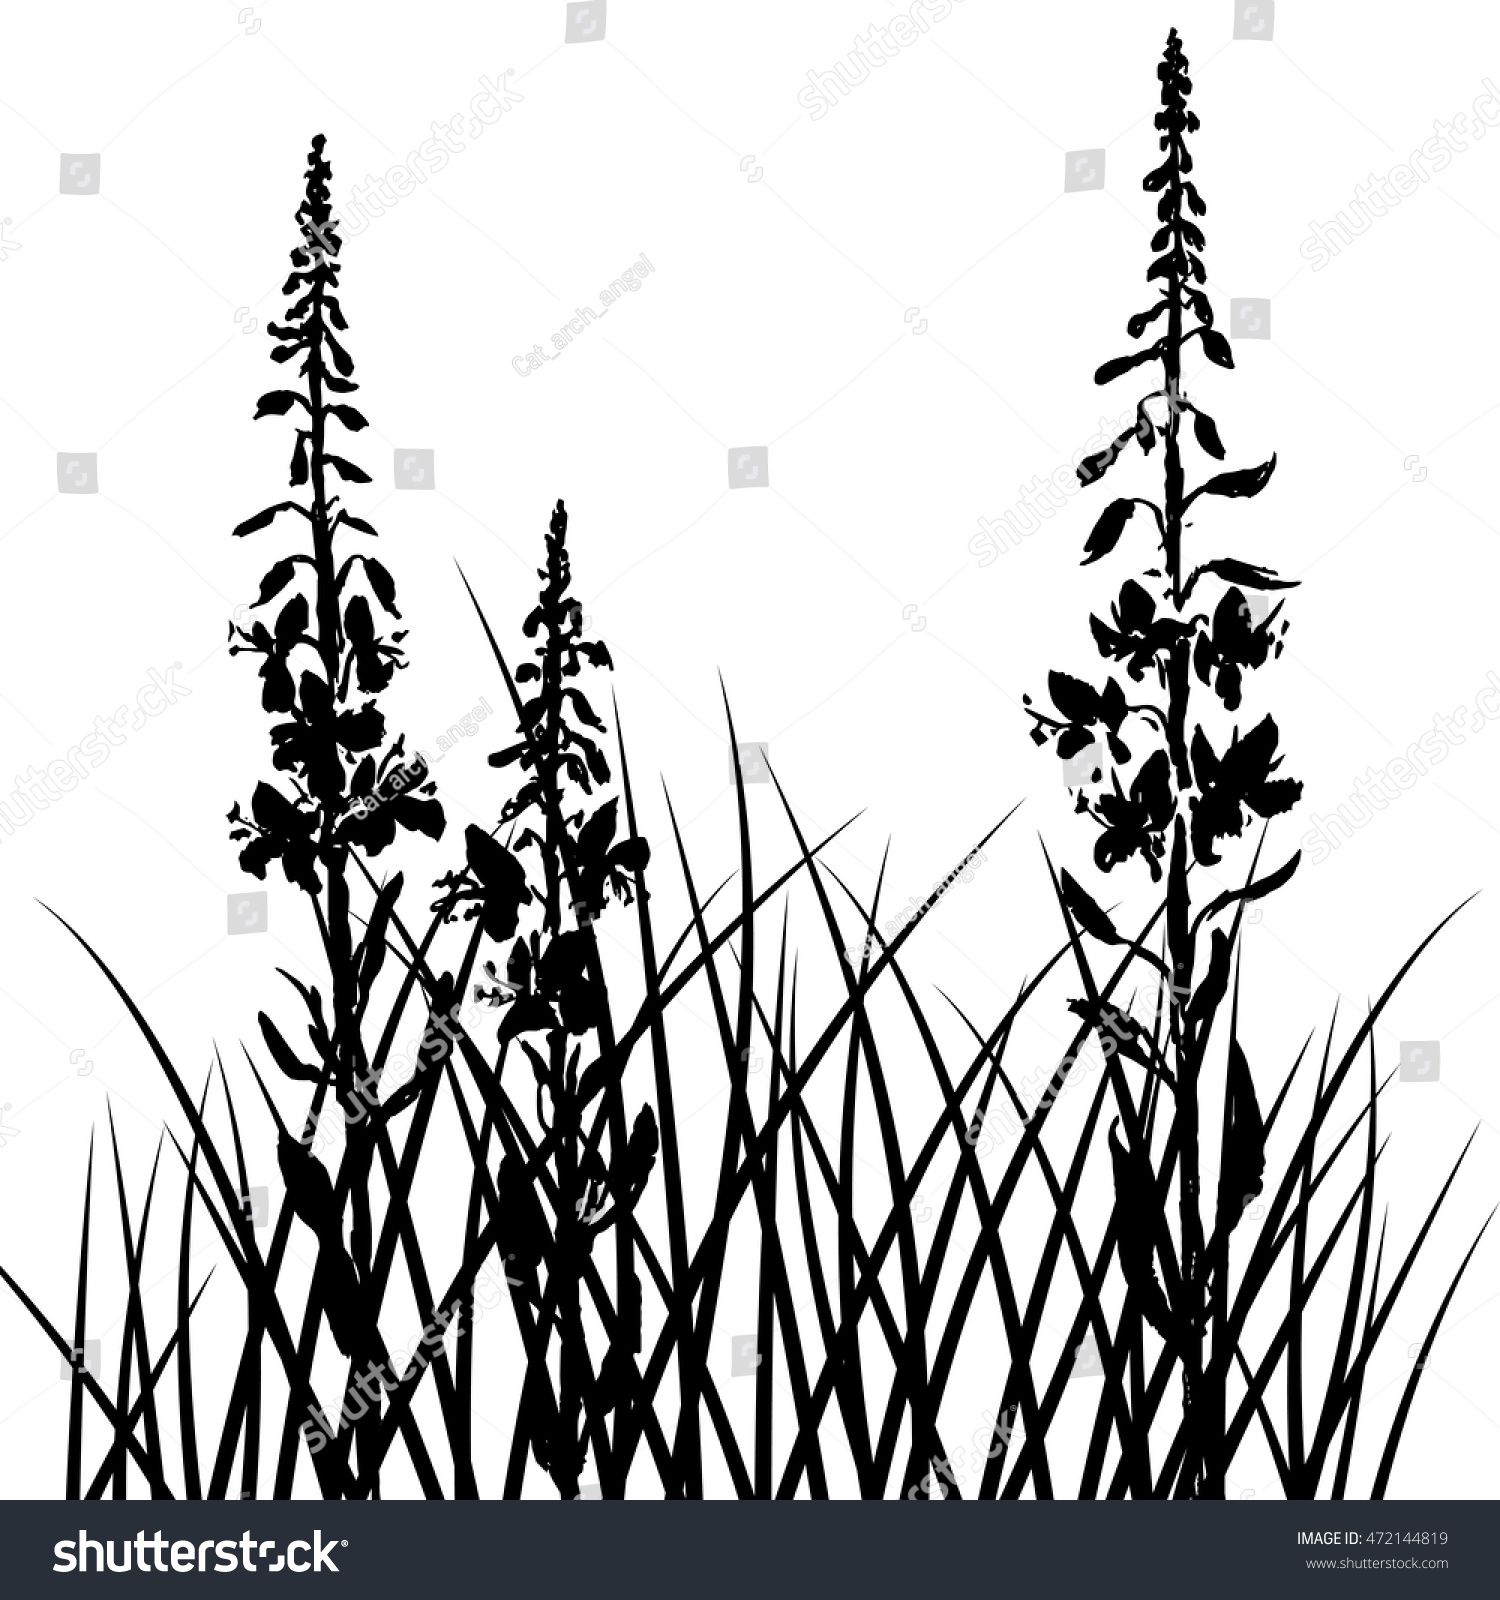 Vector Silhouettes Willow Herbs Flowers Grass Stock Photo (Photo ...